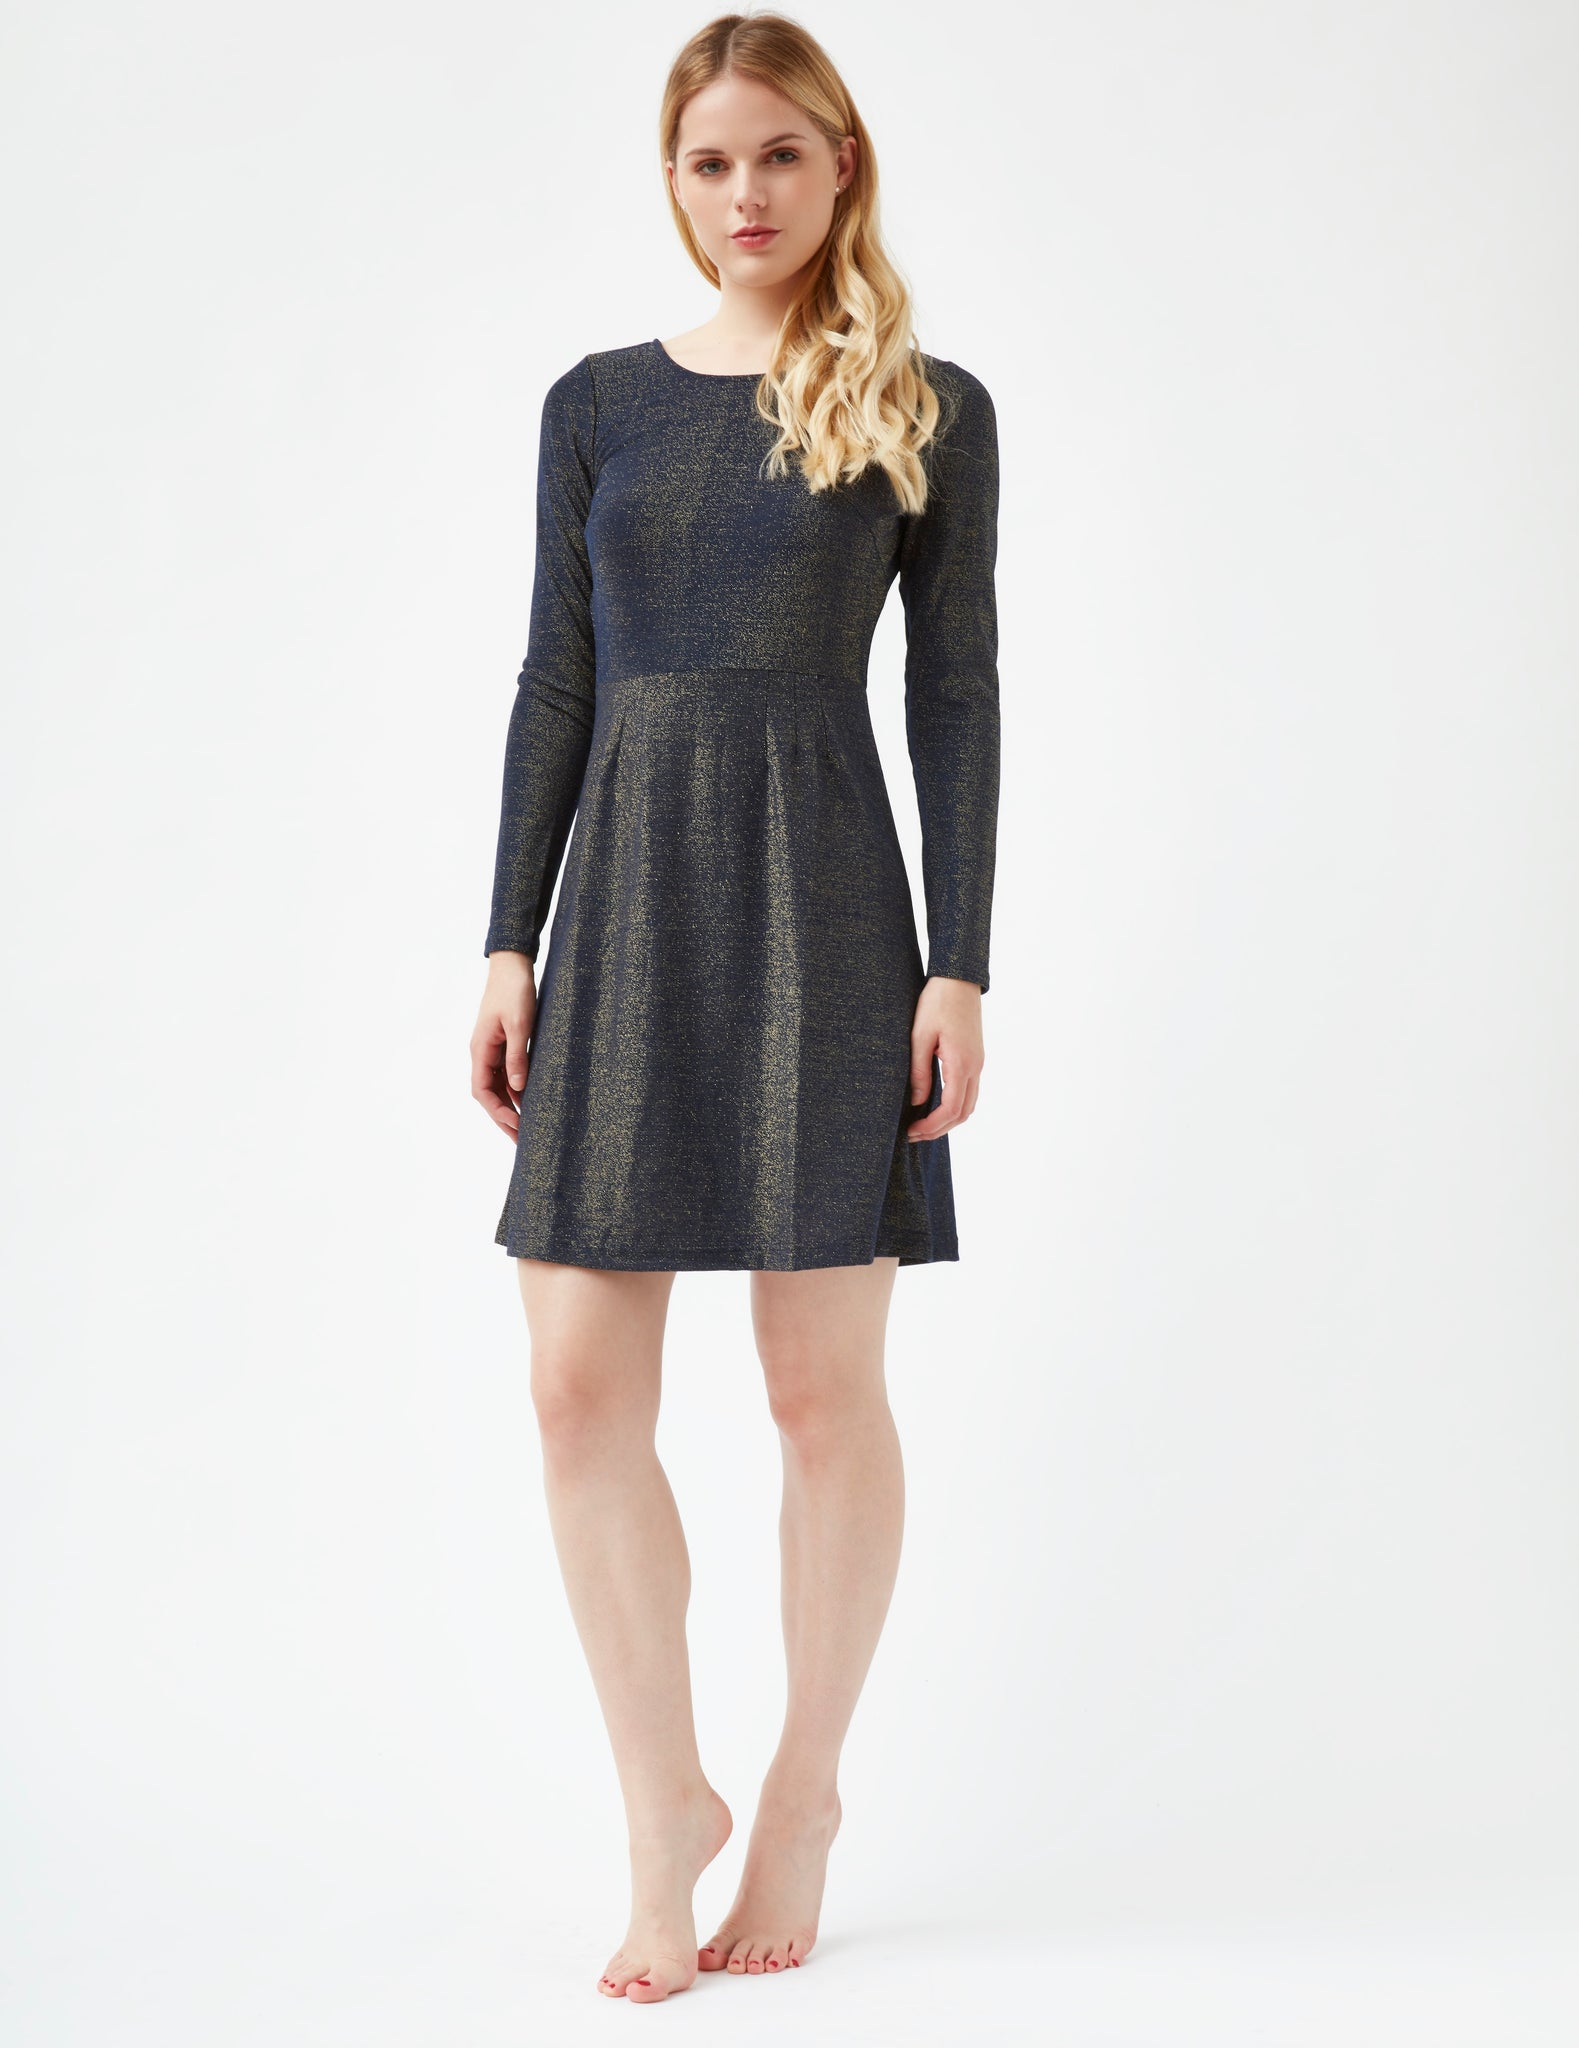 BLAST FROM THE PAST- DOUBLE TAKE GLITTER LUREX SKATER DRESS